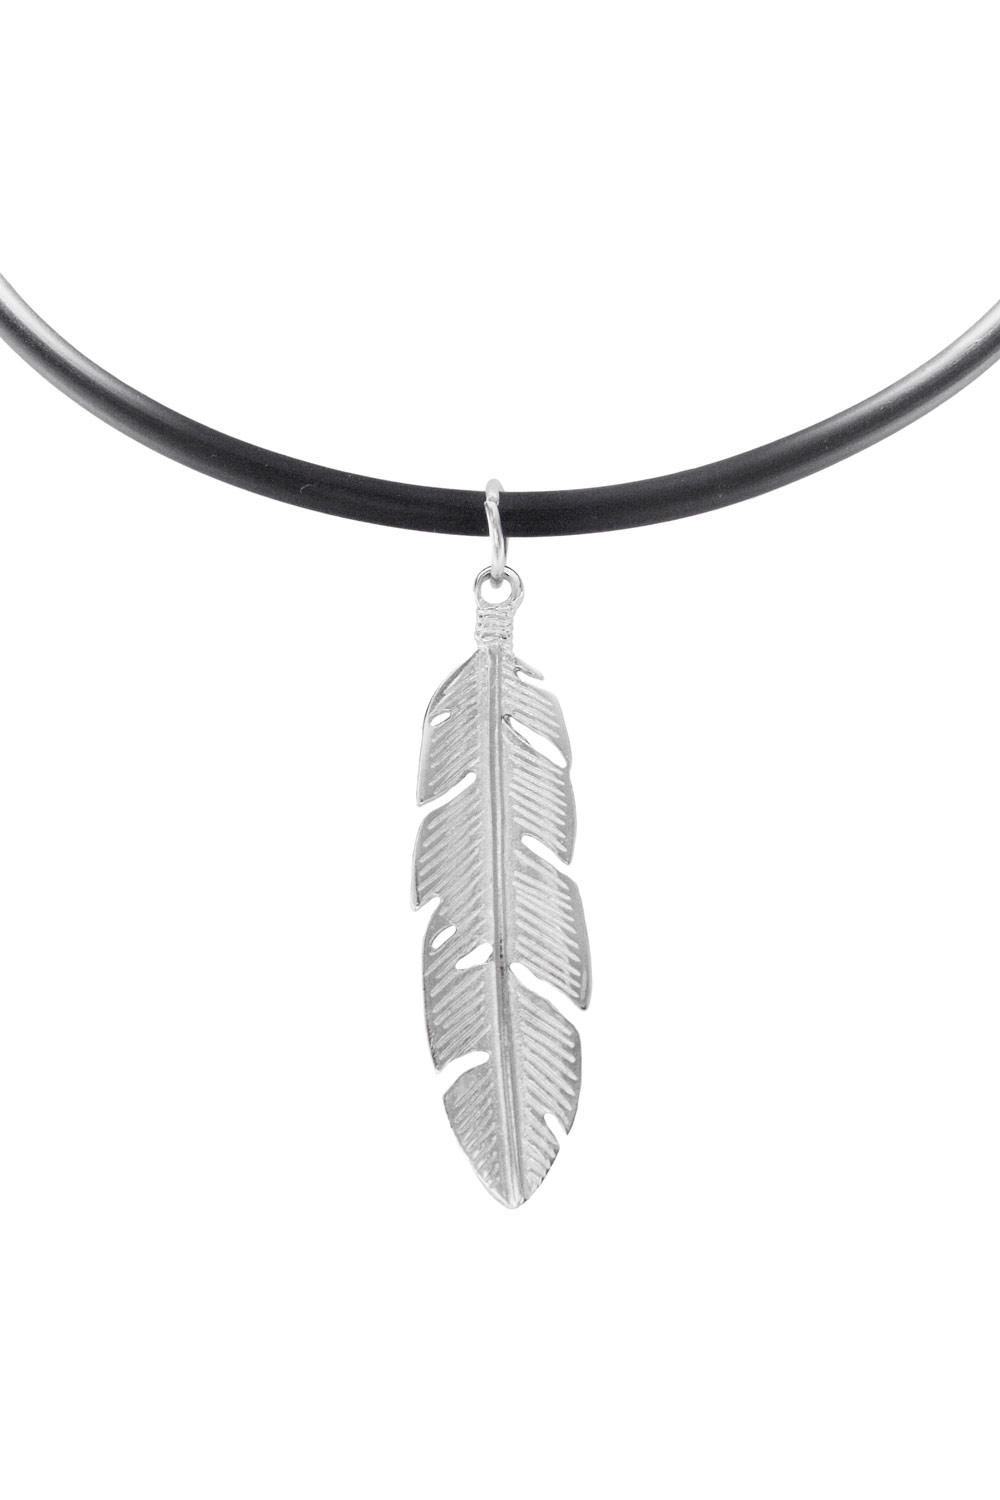 GETTO Kette FORTUNE FEATHER auf oboy.de